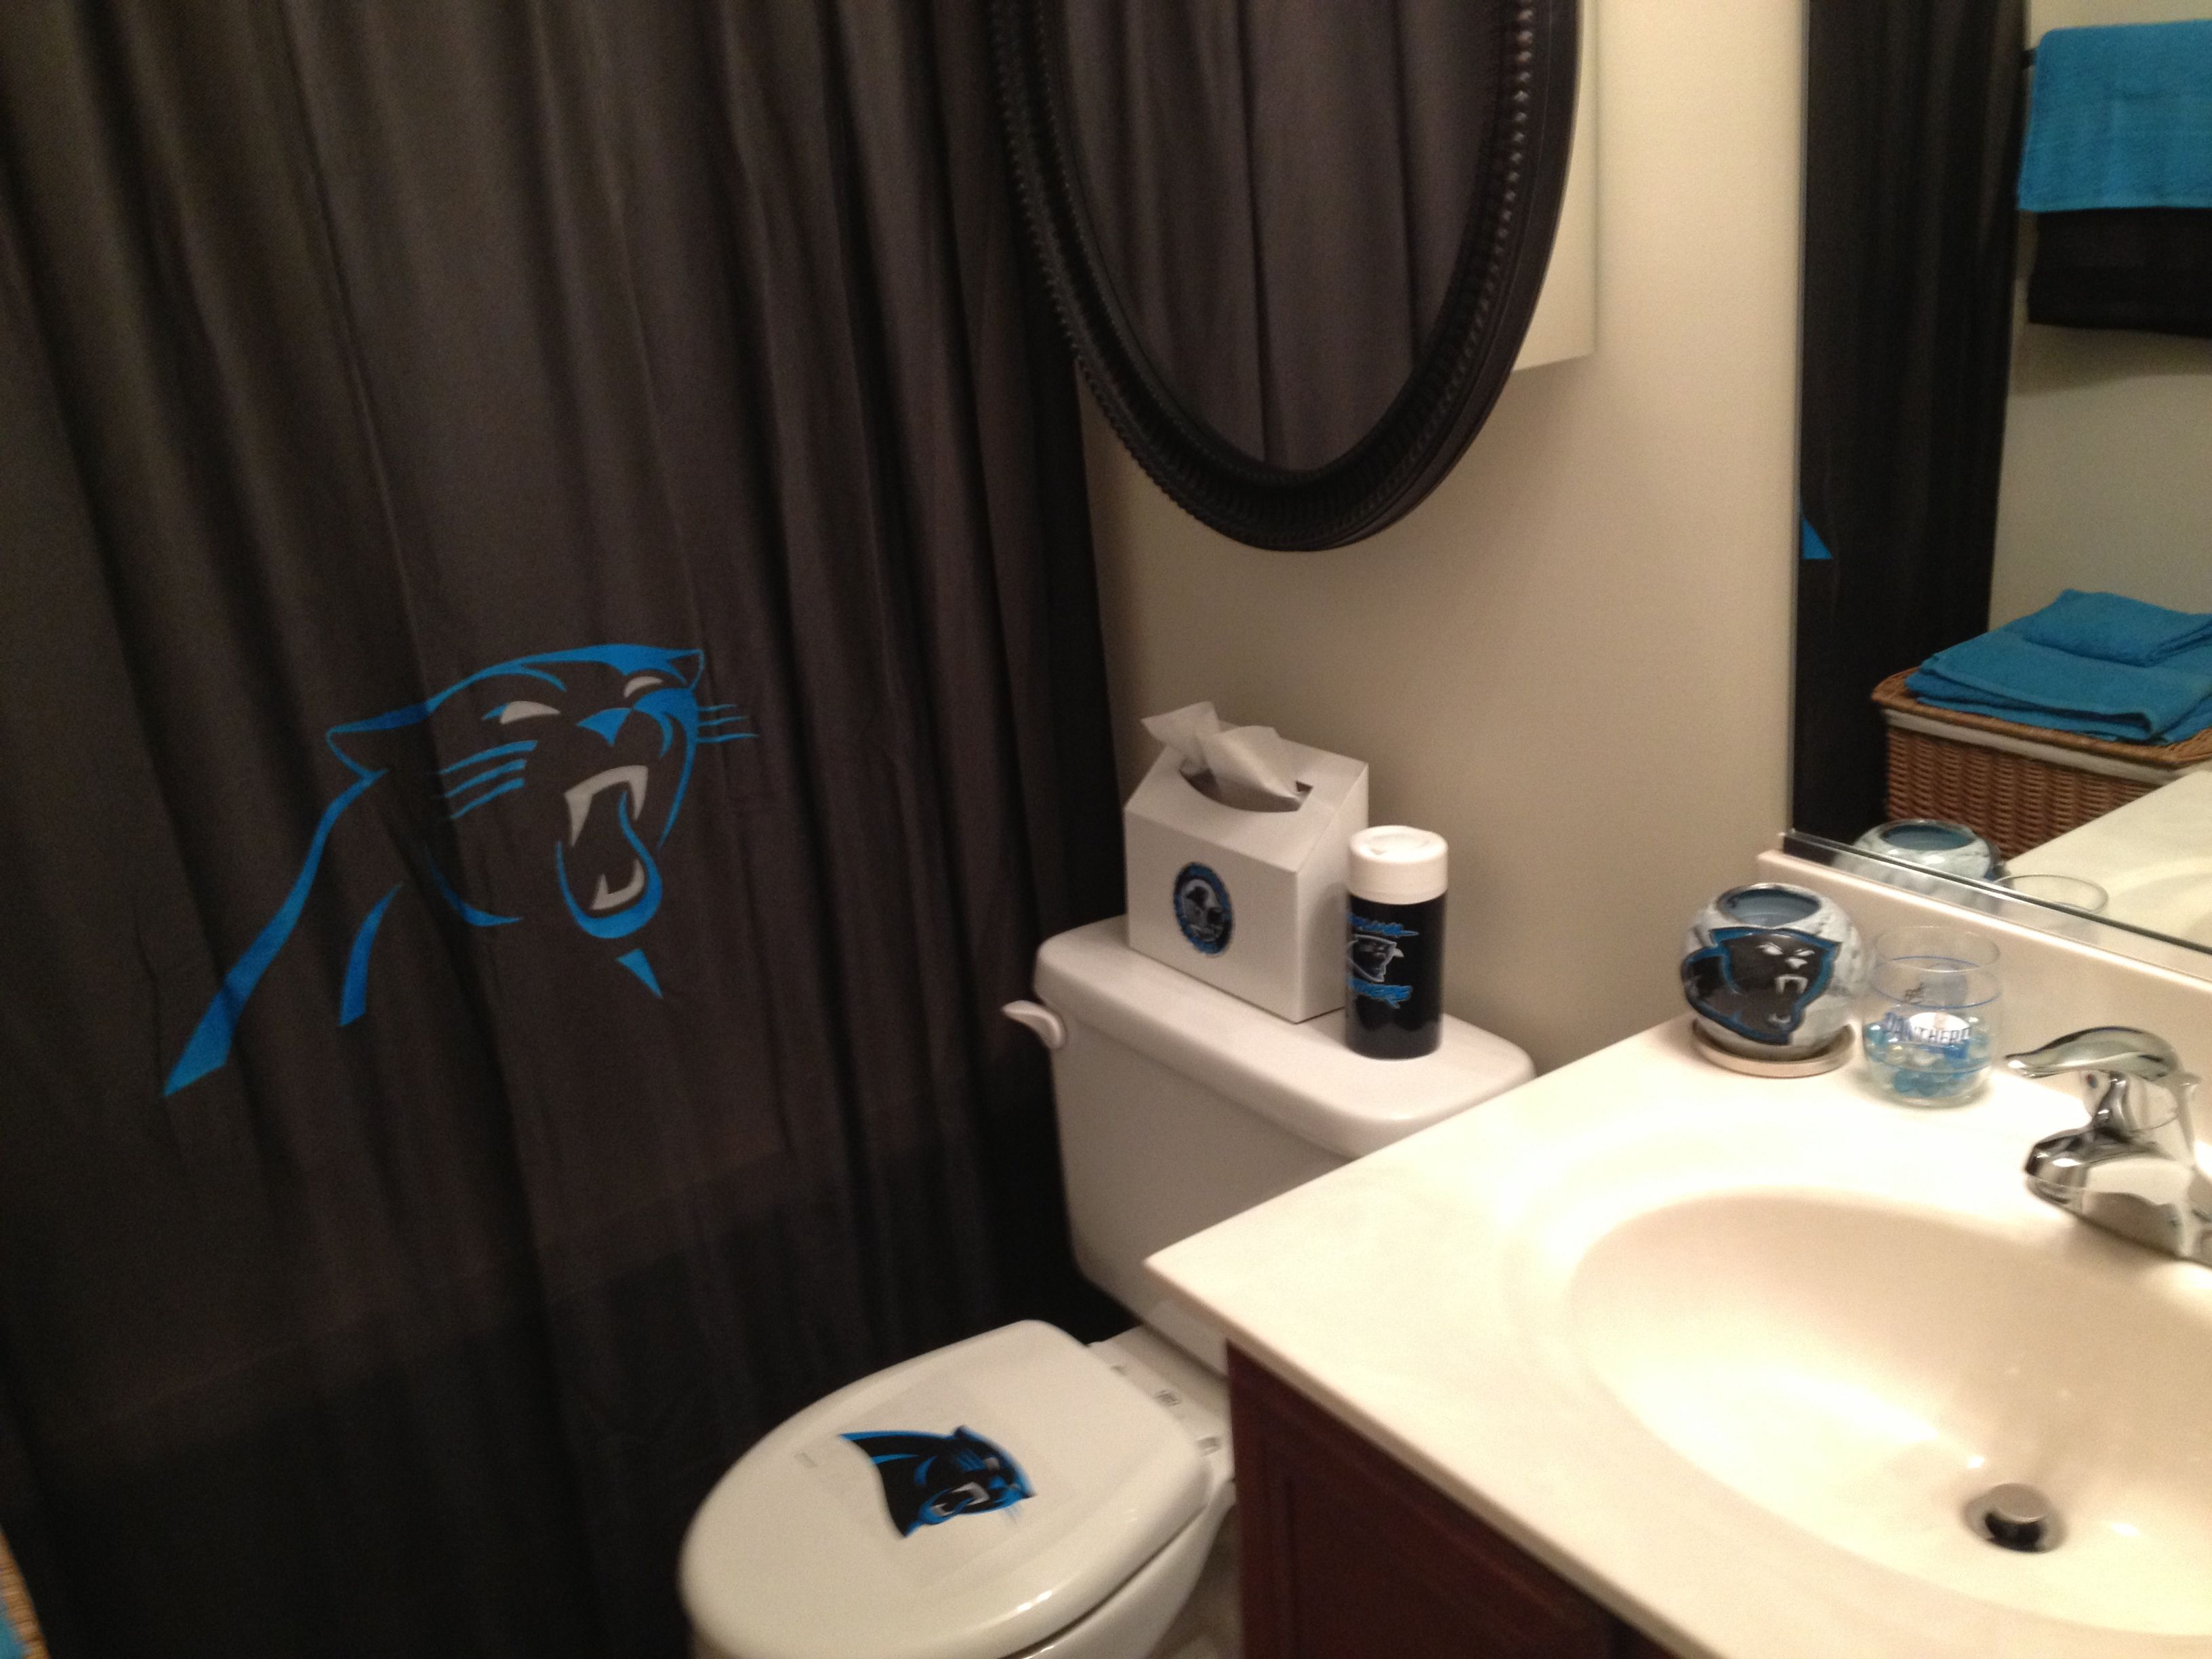 Carolina Panthers Bathroom Set You Almost Certainly Know Already That Is One Of The Trendiest Topics On Web These Days